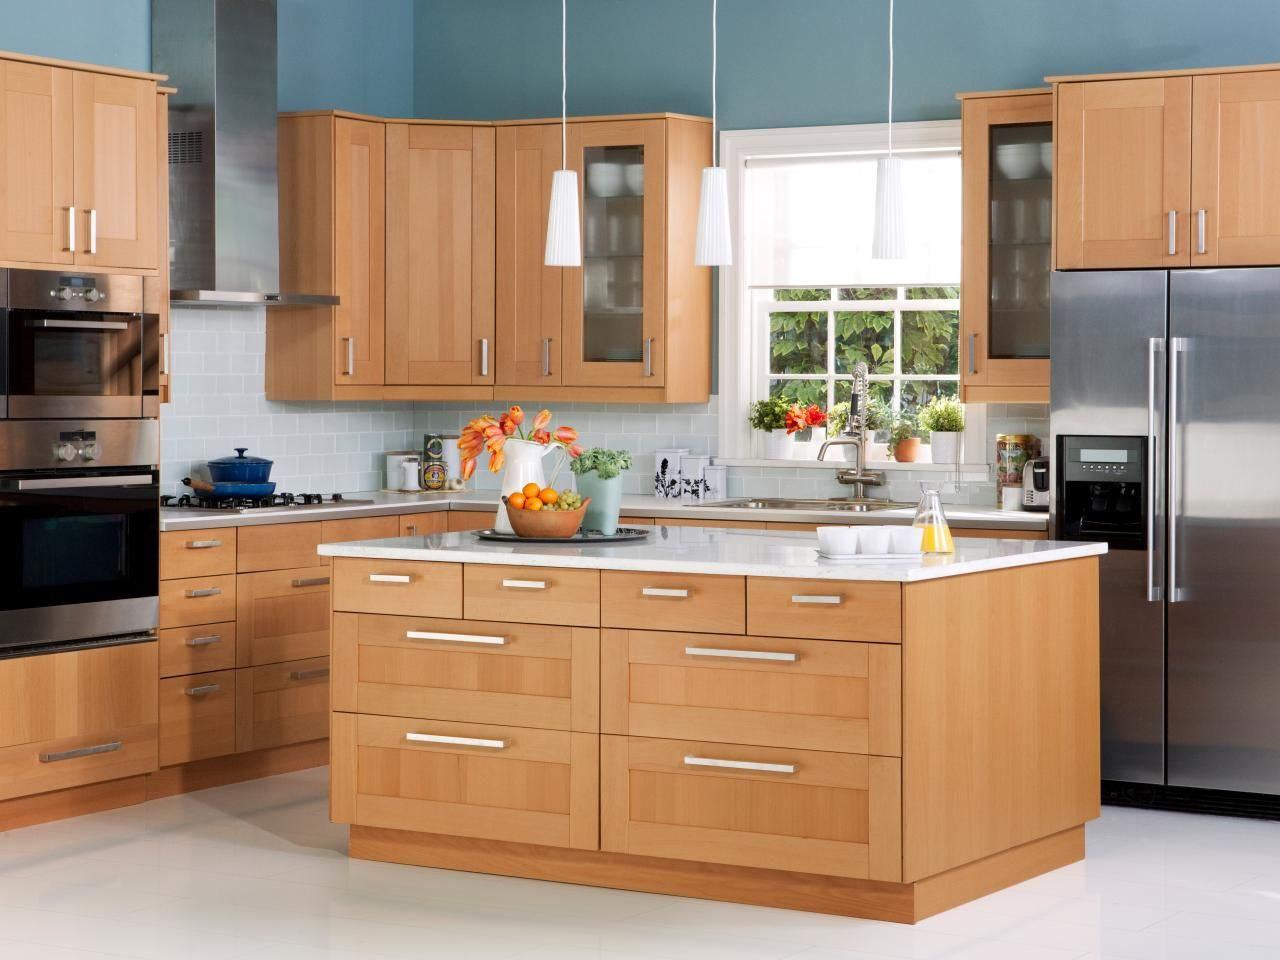 Best Ikea Kitchen Cabinets Cost Estimate Jpeg Fantastic 400 x 300